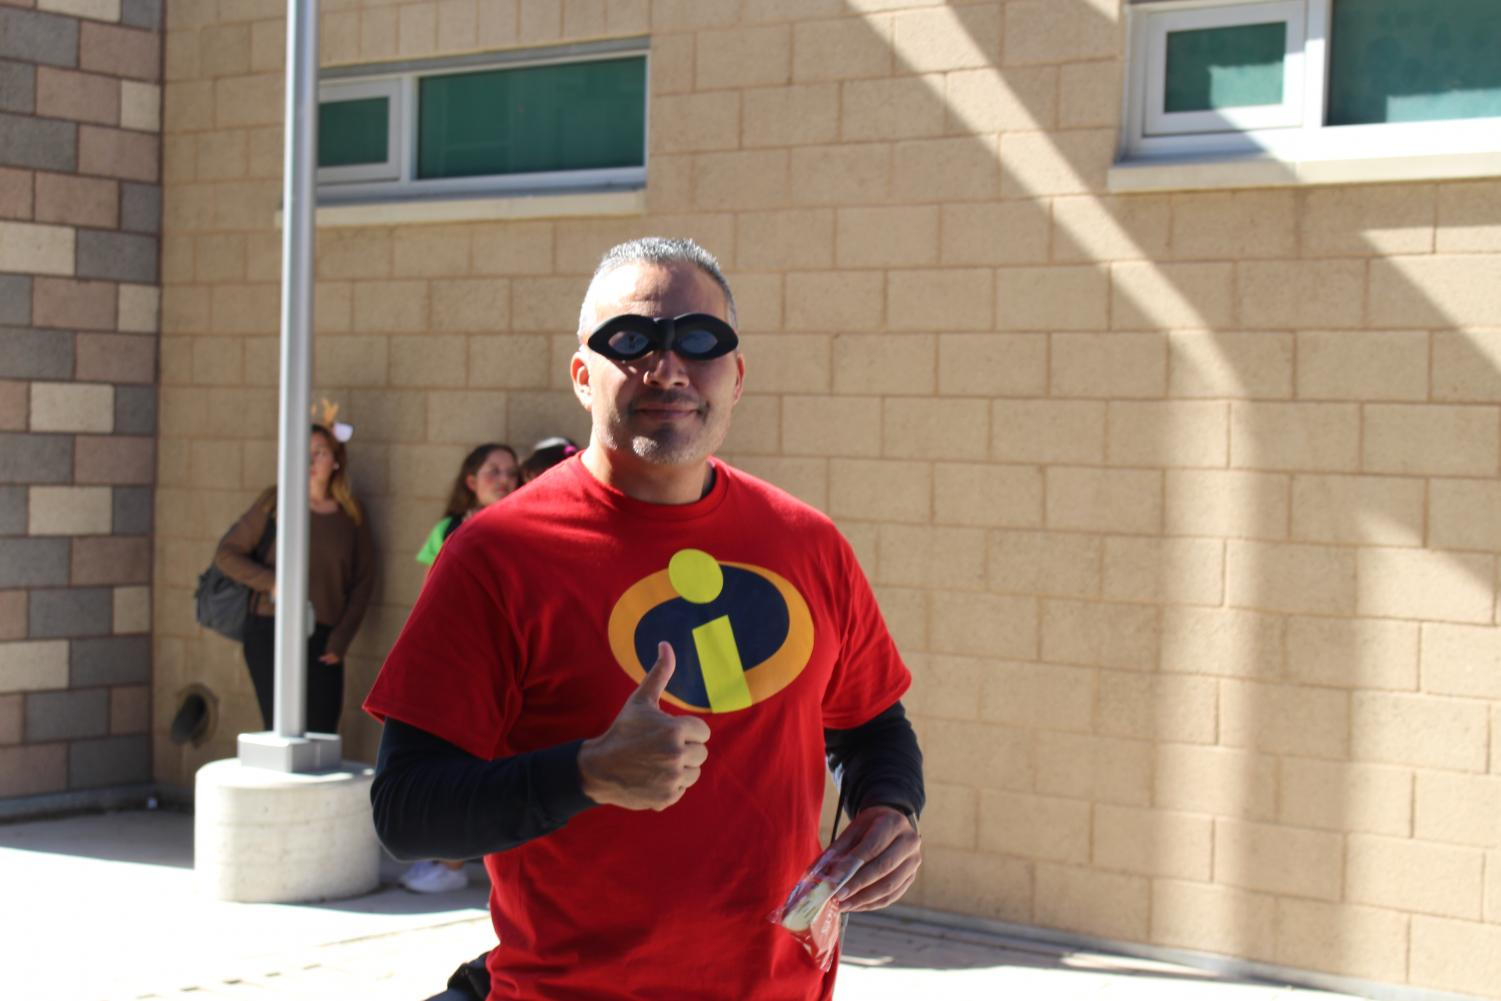 Principal+C%C3%A9sar+Morales+is+nothing+short+of+incredible.+Dressing+head+to+toe+as+%22Mr.+Incredible%2C%22+Morales+was+completely+prepared+to+compete+in+the+annual+staff+Halloween+Costume+Contest+that+got+canceled+this+year+due+to+lack+of+time+at+lunch.